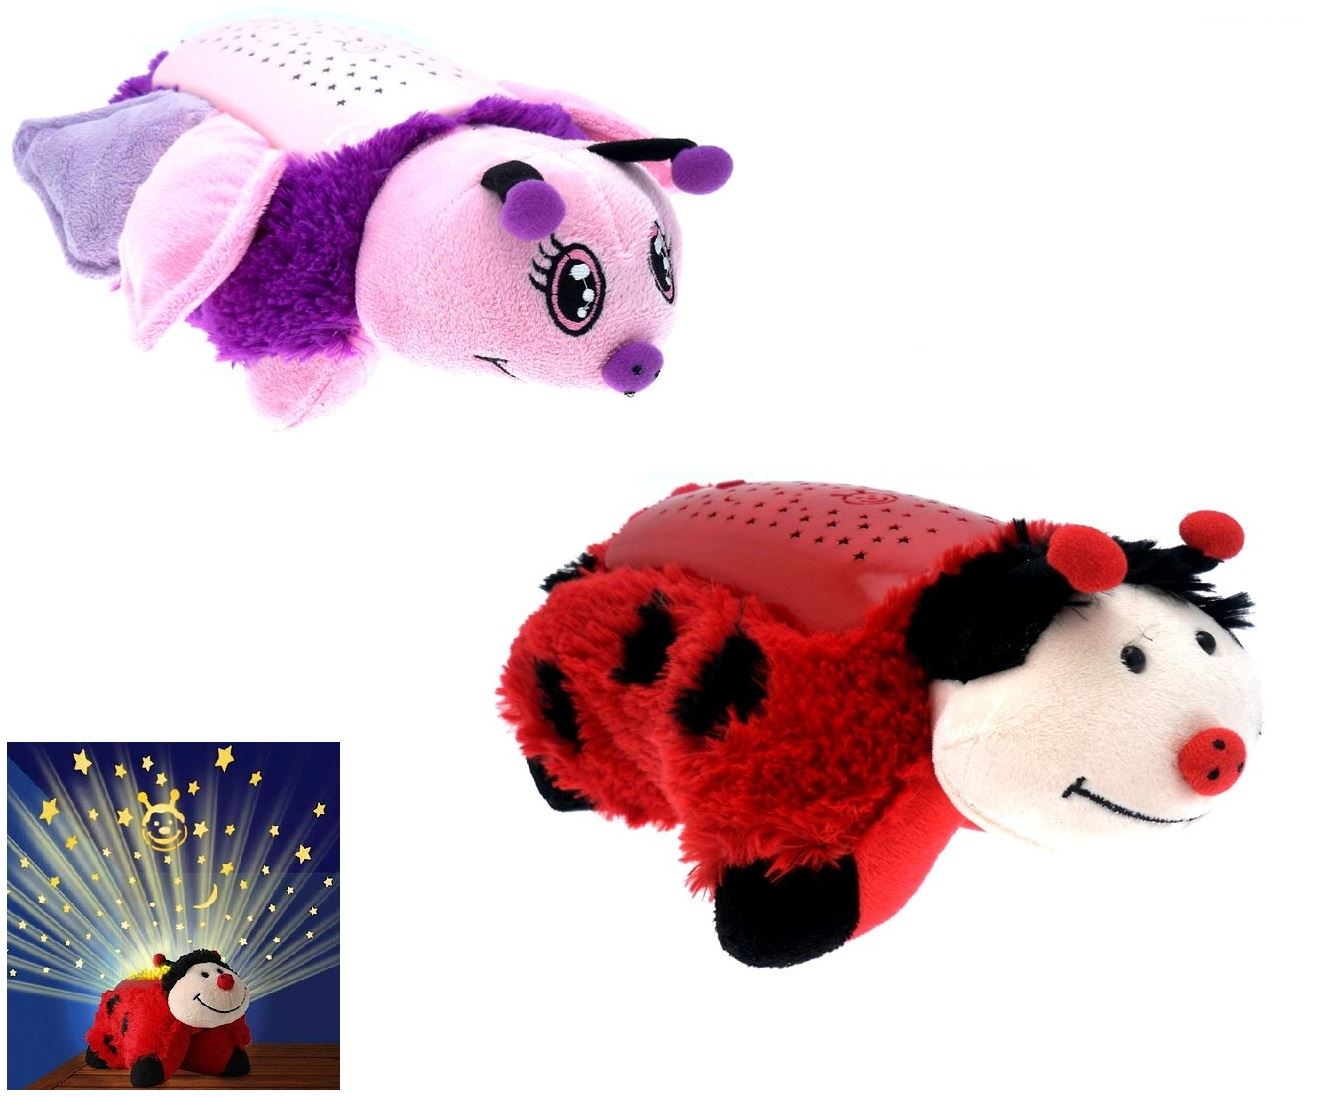 Animal Light Pillows : ANIMAL PILLOW PETS DREAM WITH NIGHT LIGHT KIDS TOY LITES PLUSH CUDDLY CUSHION eBay